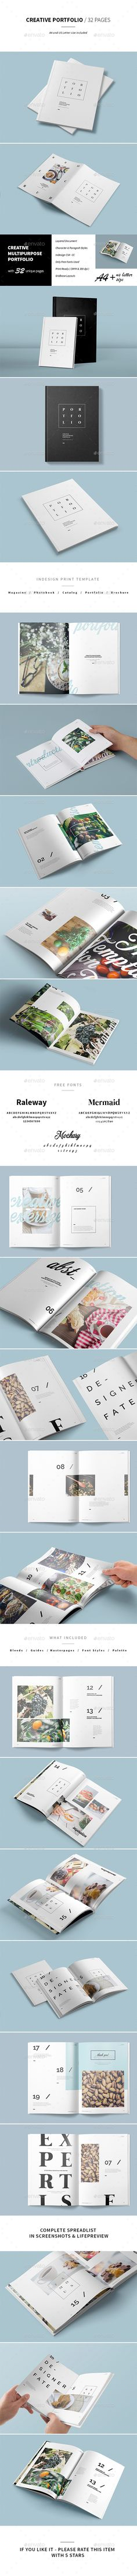 Multipurpose Portfolio Brochure Template InDesign INDD. Download here: http://graphicriver.net/item/multipurpose-portfolio/16152790?ref=ksioks